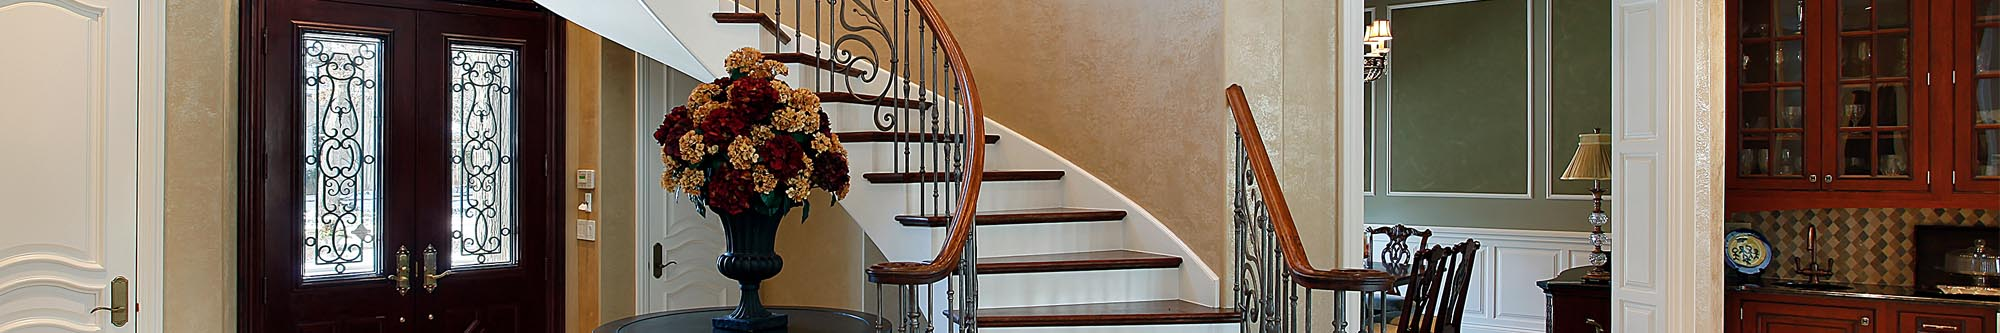 Good Luk Team professional home photography and video